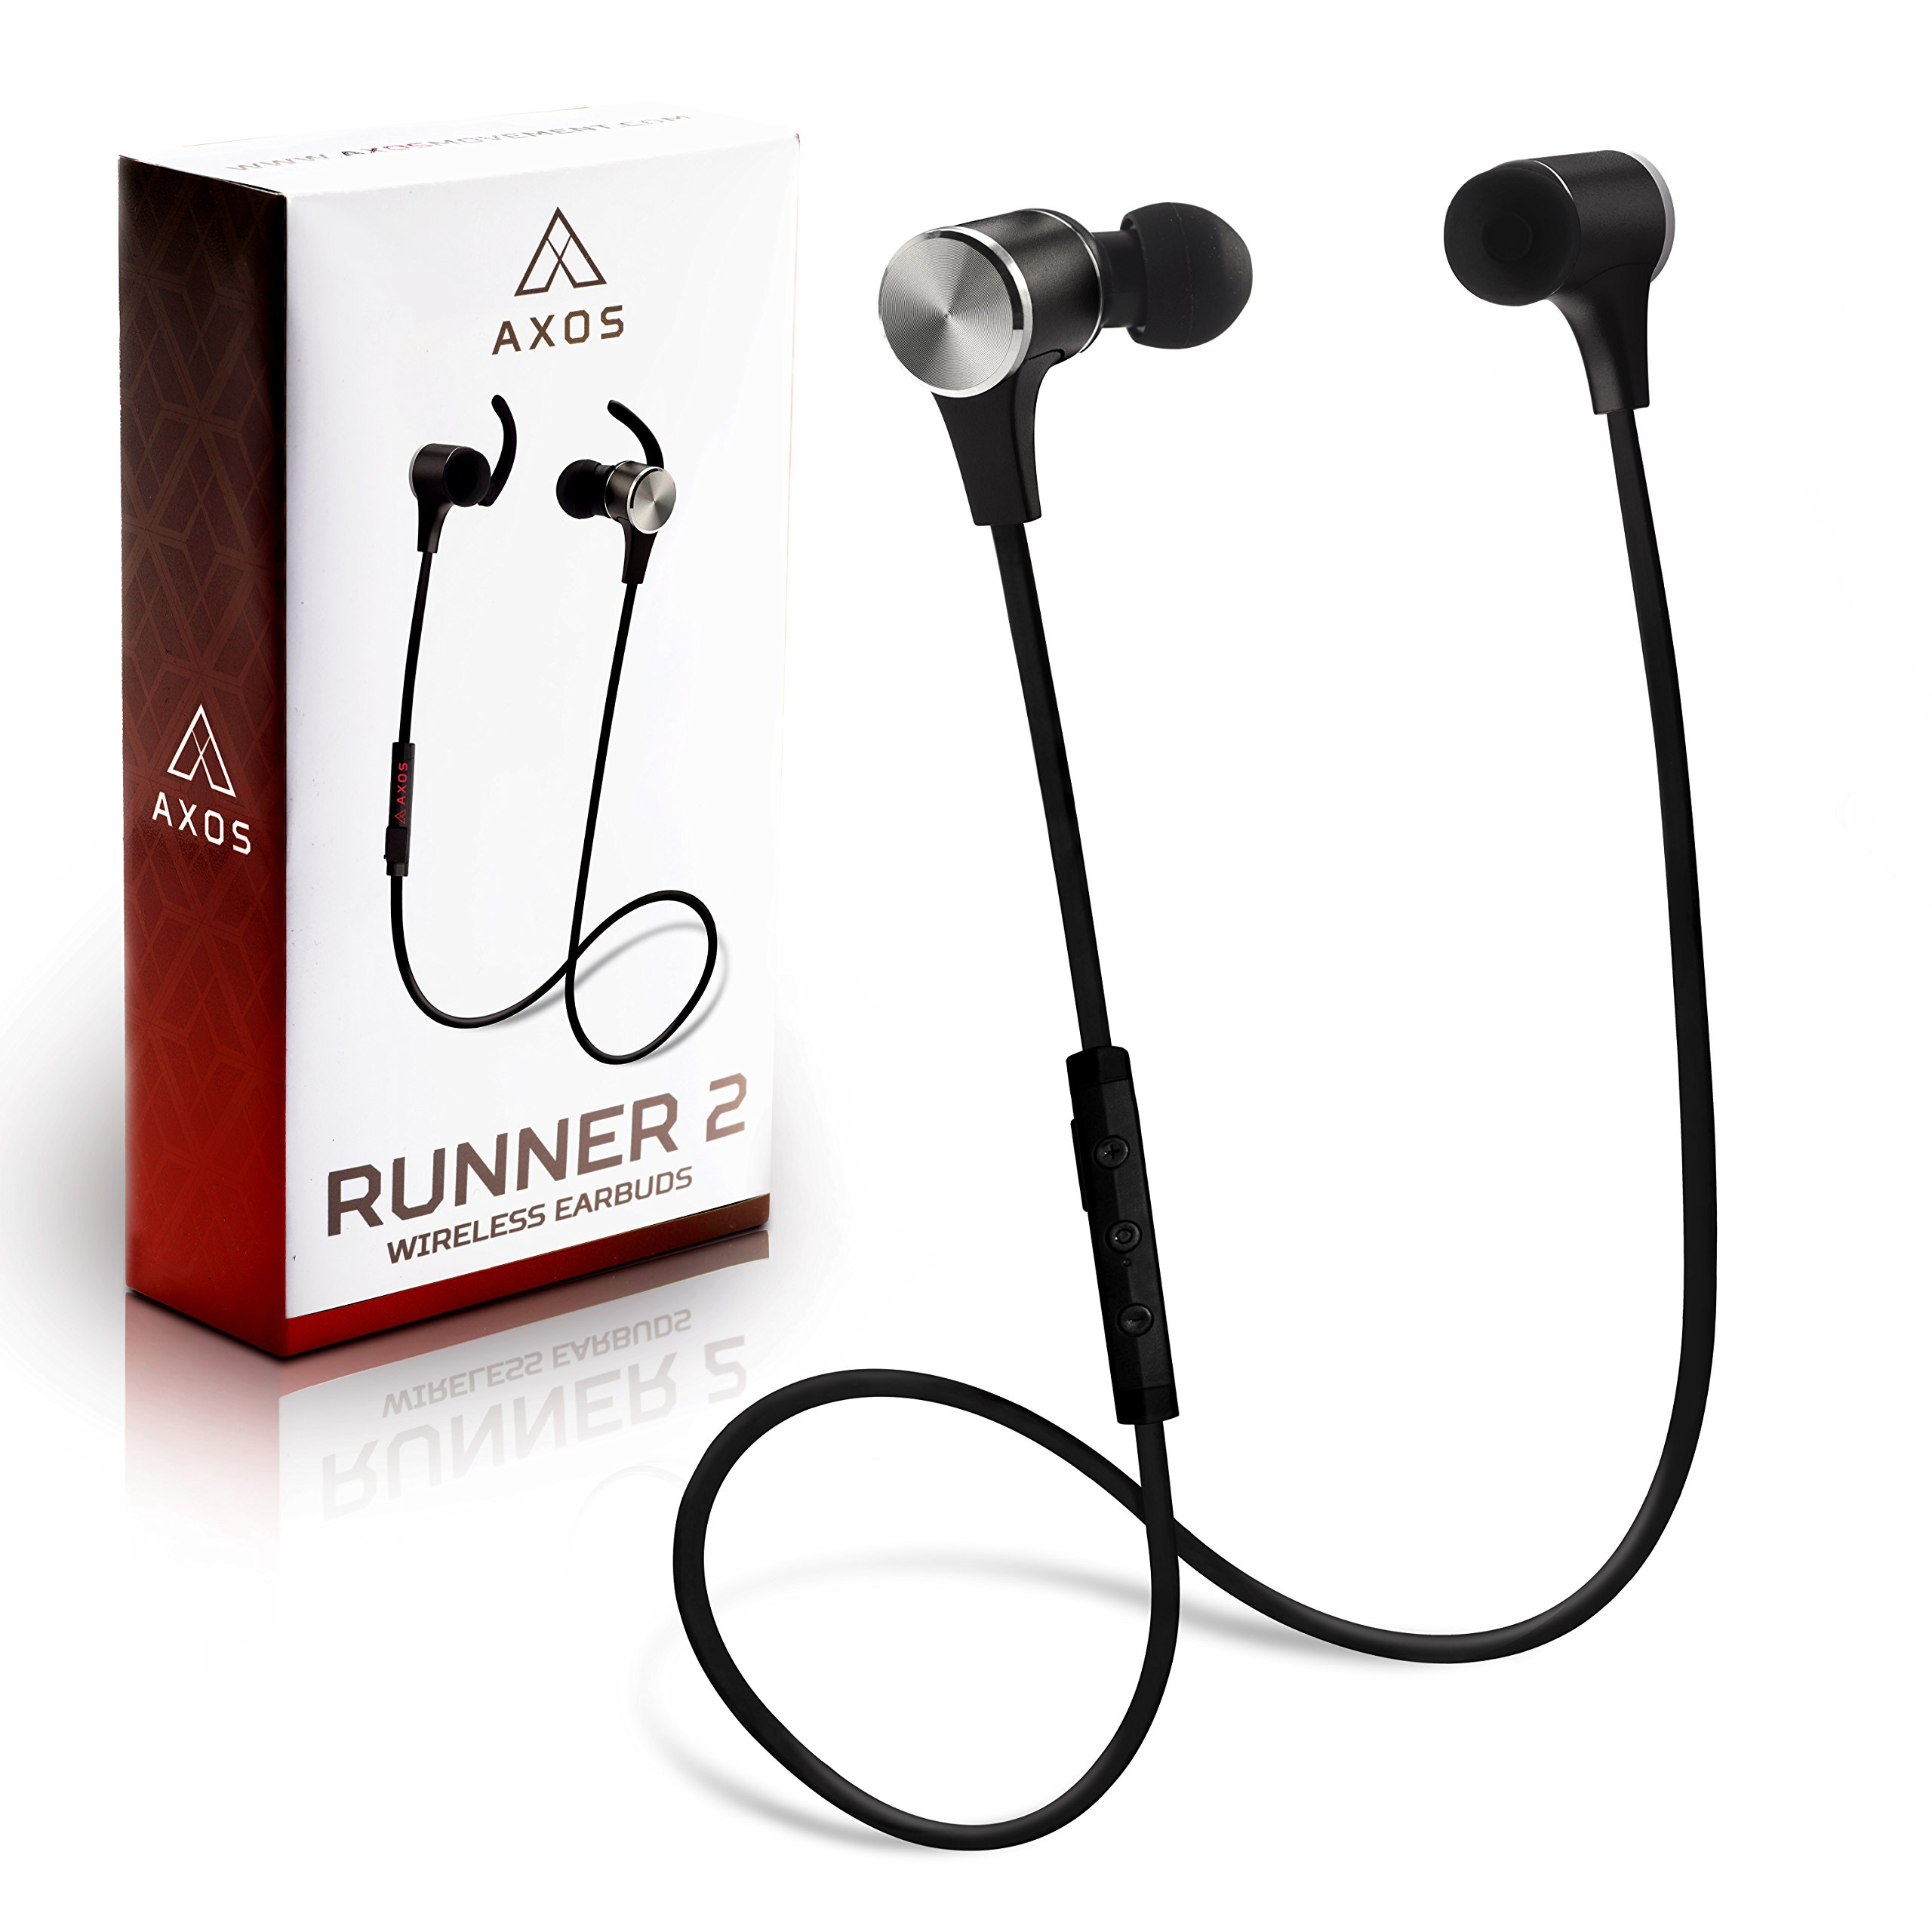 Axos Runner - Wireless Bluetooth Earbuds. Bluetooth Headphones for Lifting and Exercise with APTx, 6 Black Comfy Earphone Tips, Carrying Bag. Microphone for Phone Calls